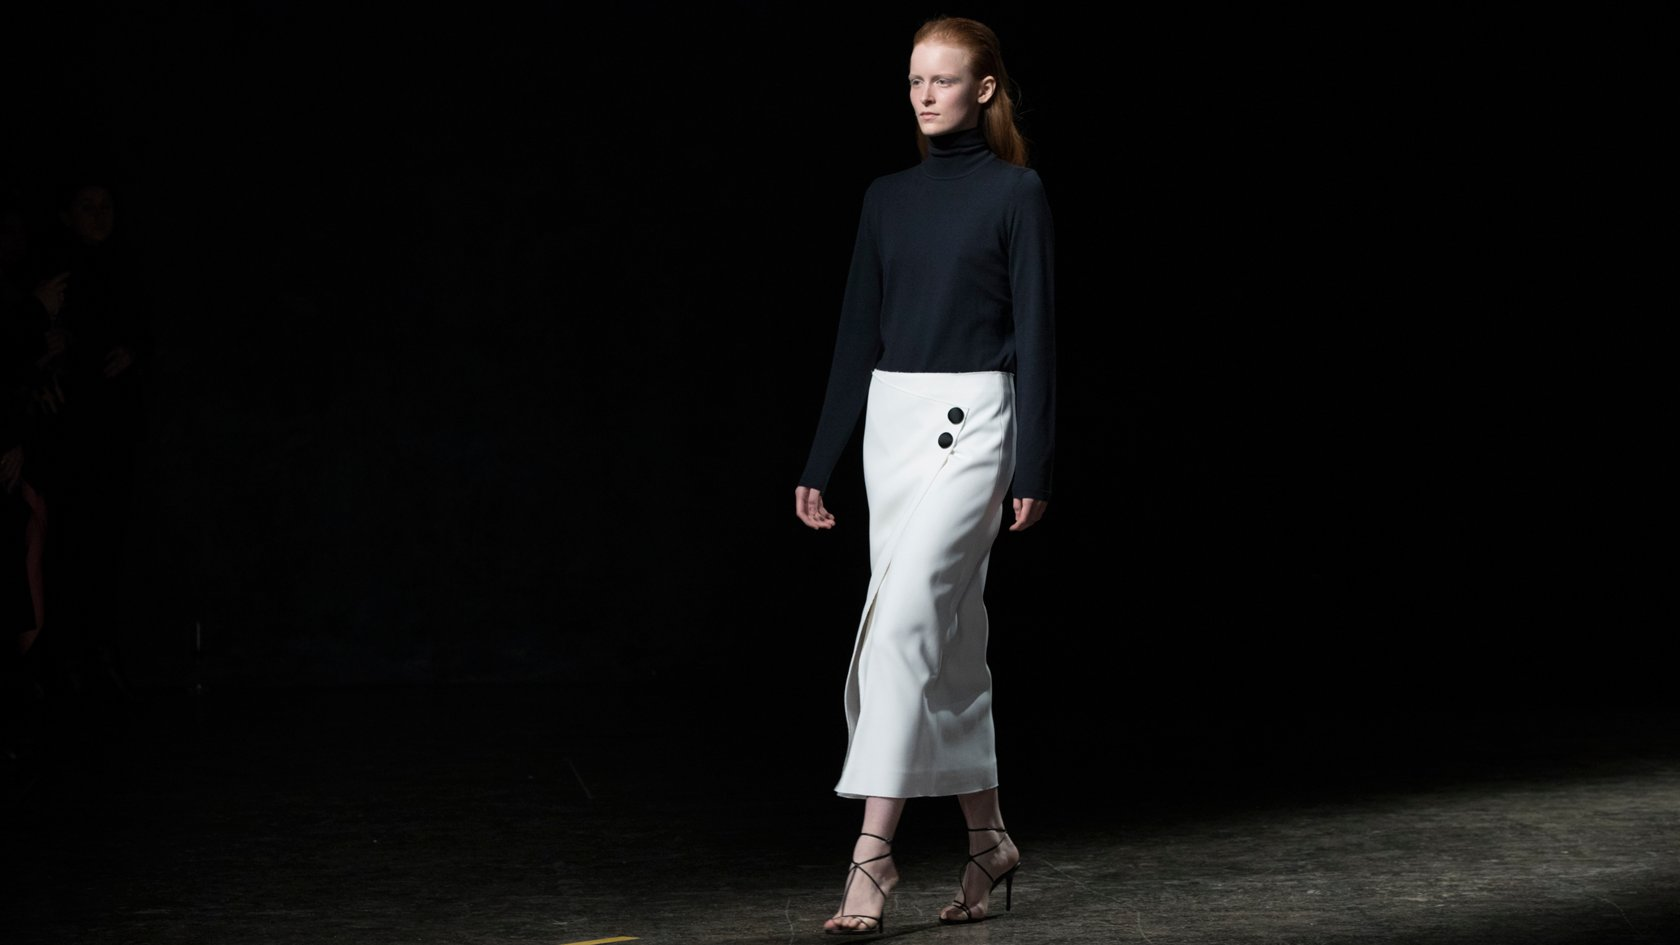 a3f557fc85c2 Woman wearing a white skirt styled with a black knitwear turtleneck from  the BOSS Womenswear Gallery ...